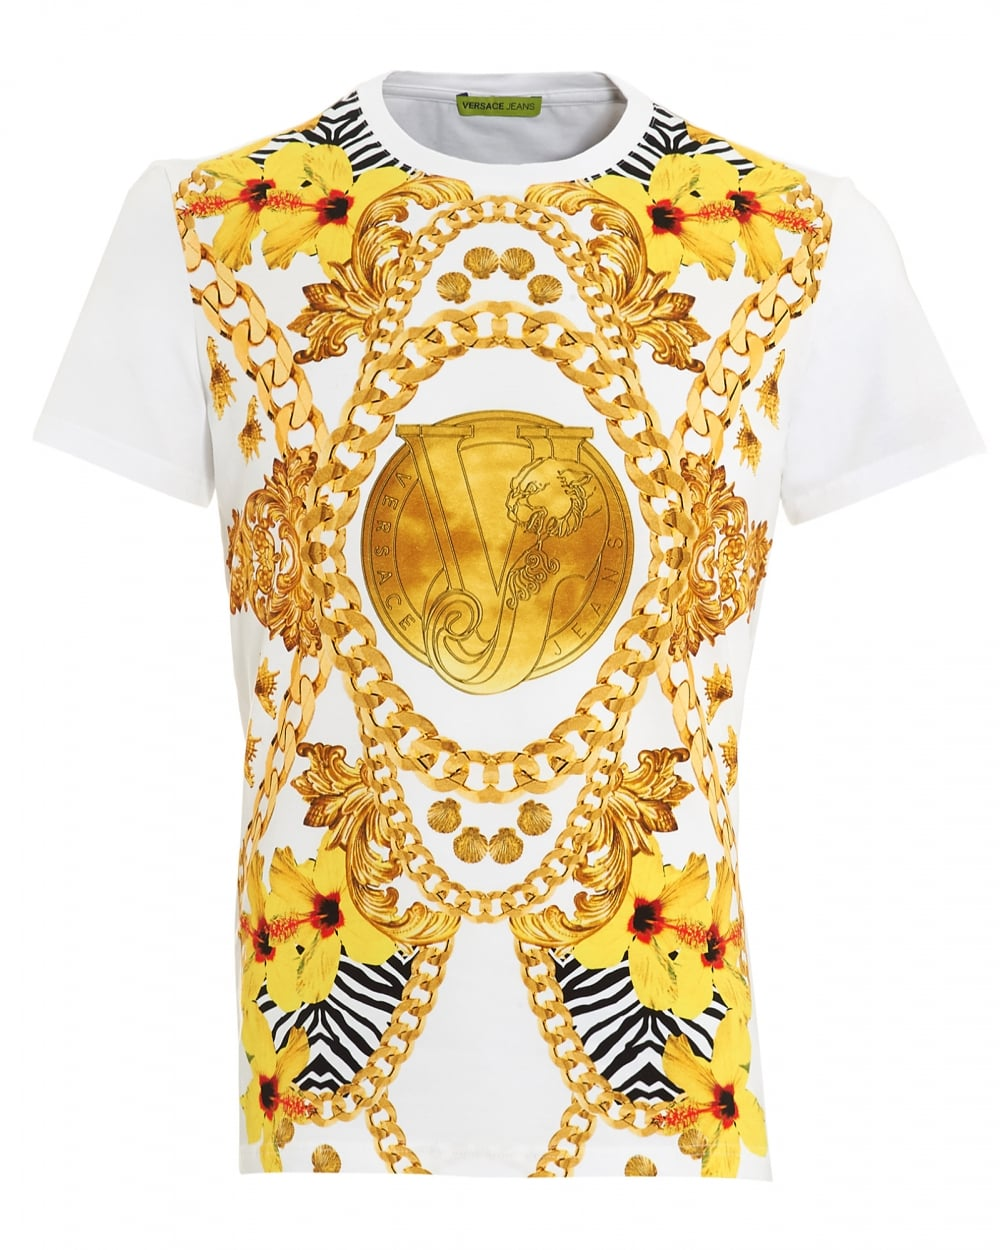 versace jeans mens large chain t shirt slim fit white tee. Black Bedroom Furniture Sets. Home Design Ideas